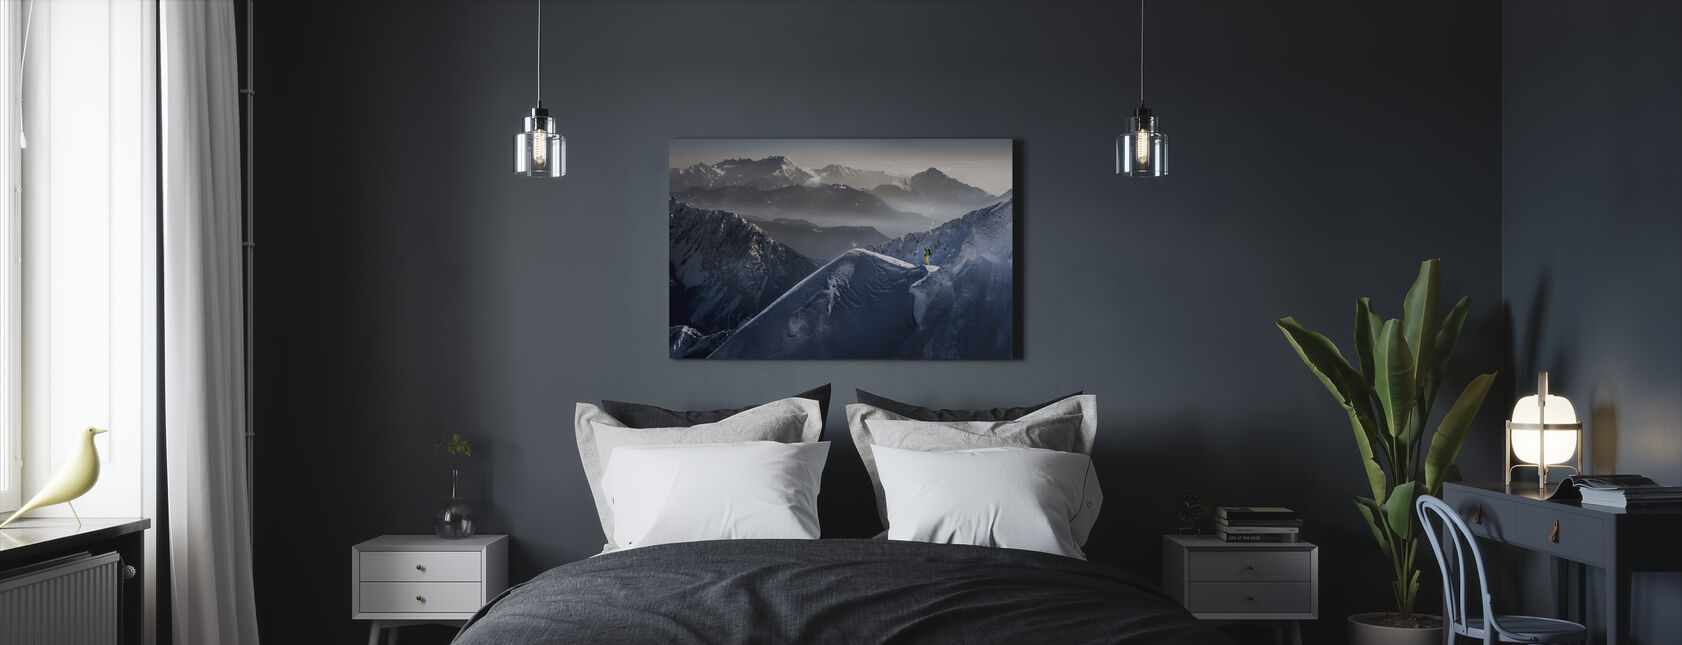 Skiër op Mountain Top - Canvas print - Slaapkamer